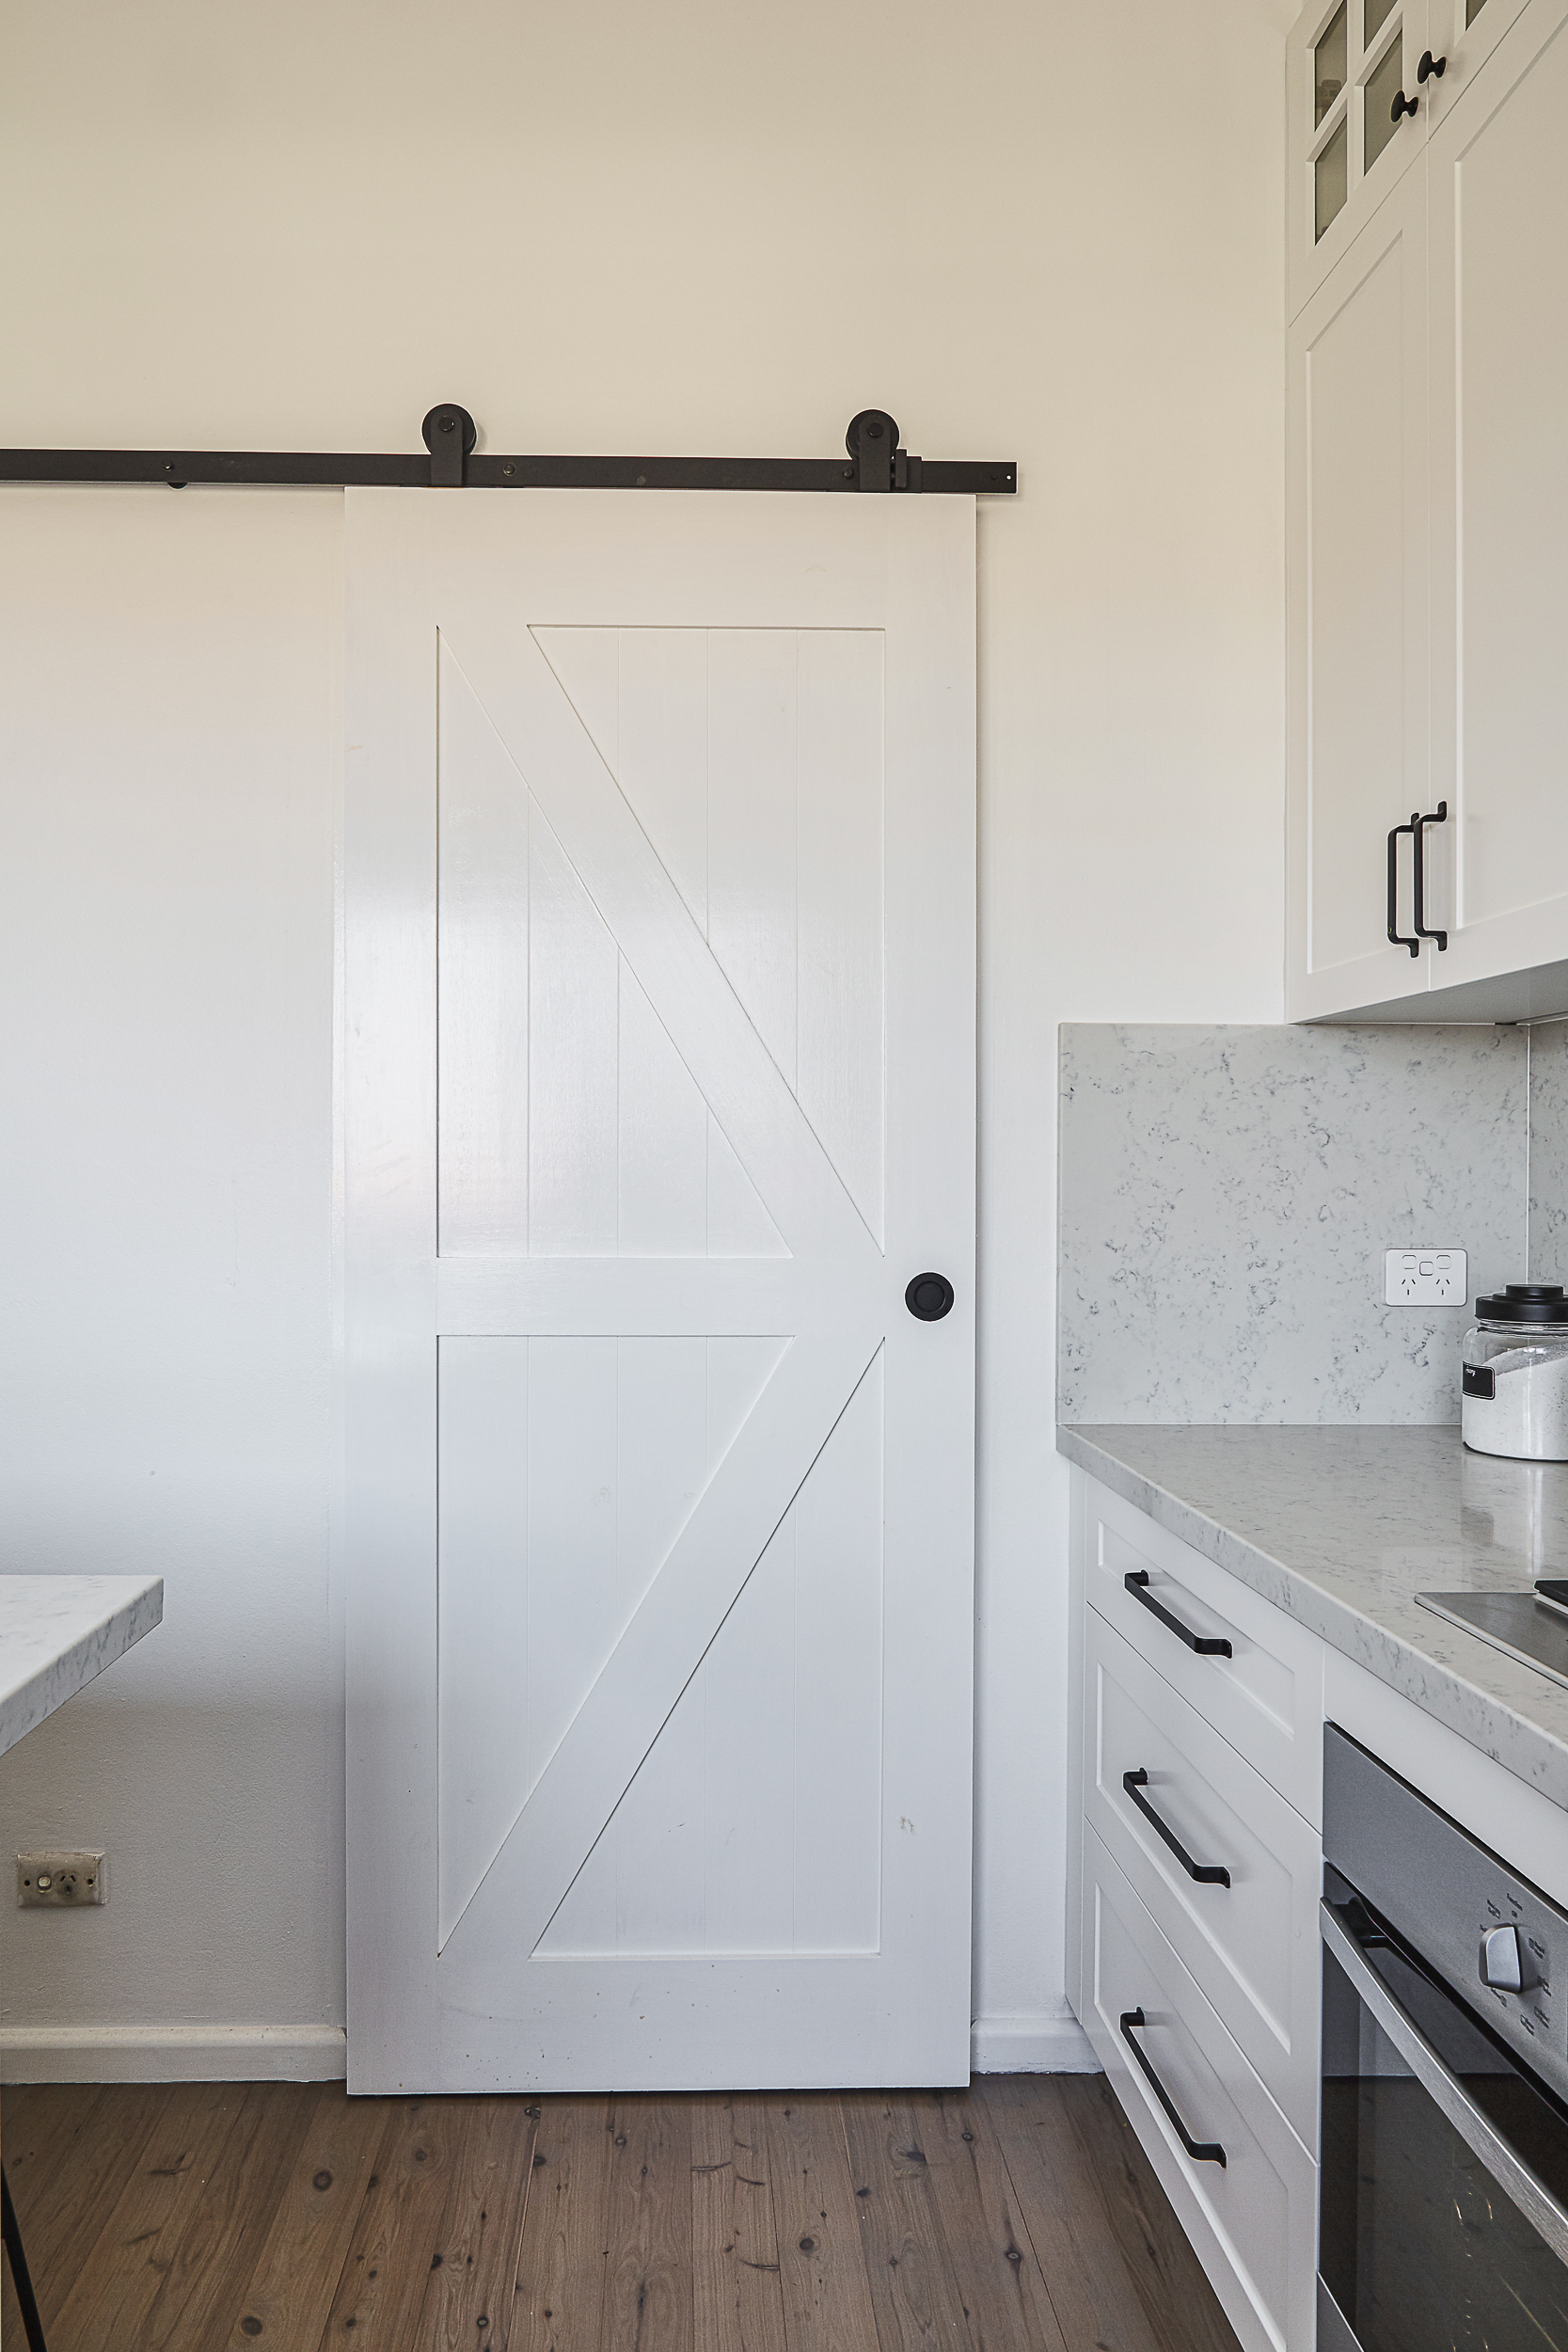 Kitchen butler's barn door